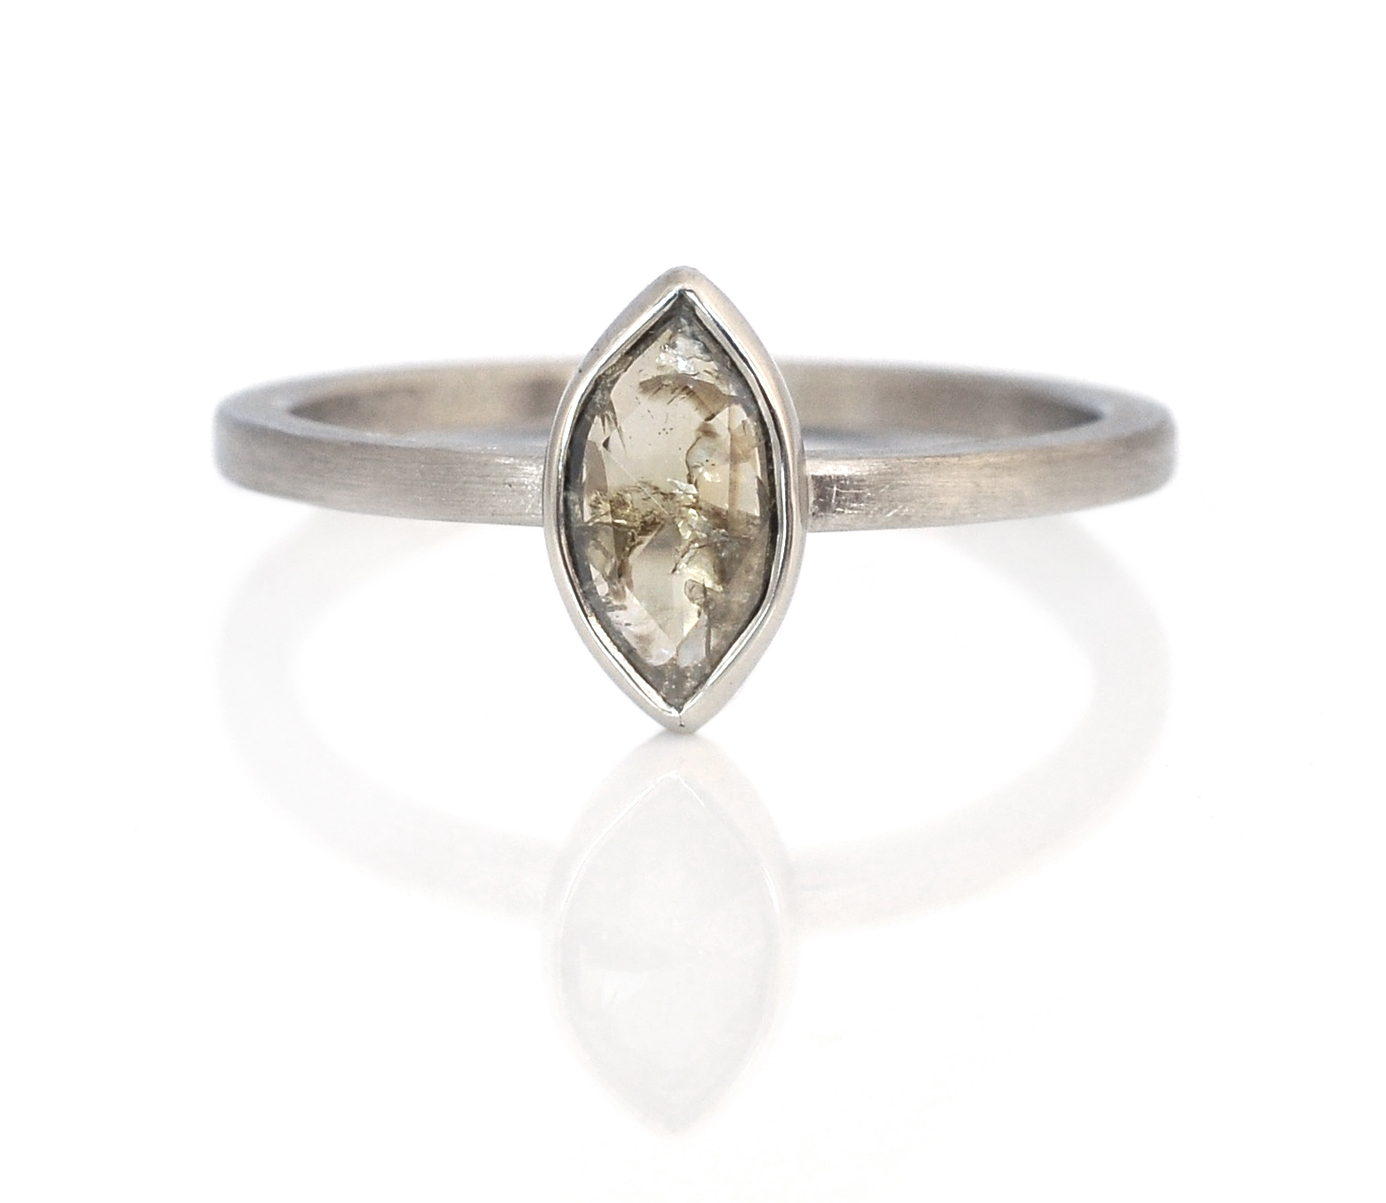 Gray-green rose cut marquis diamond in an open back bezel and band made of 14k gray gold.